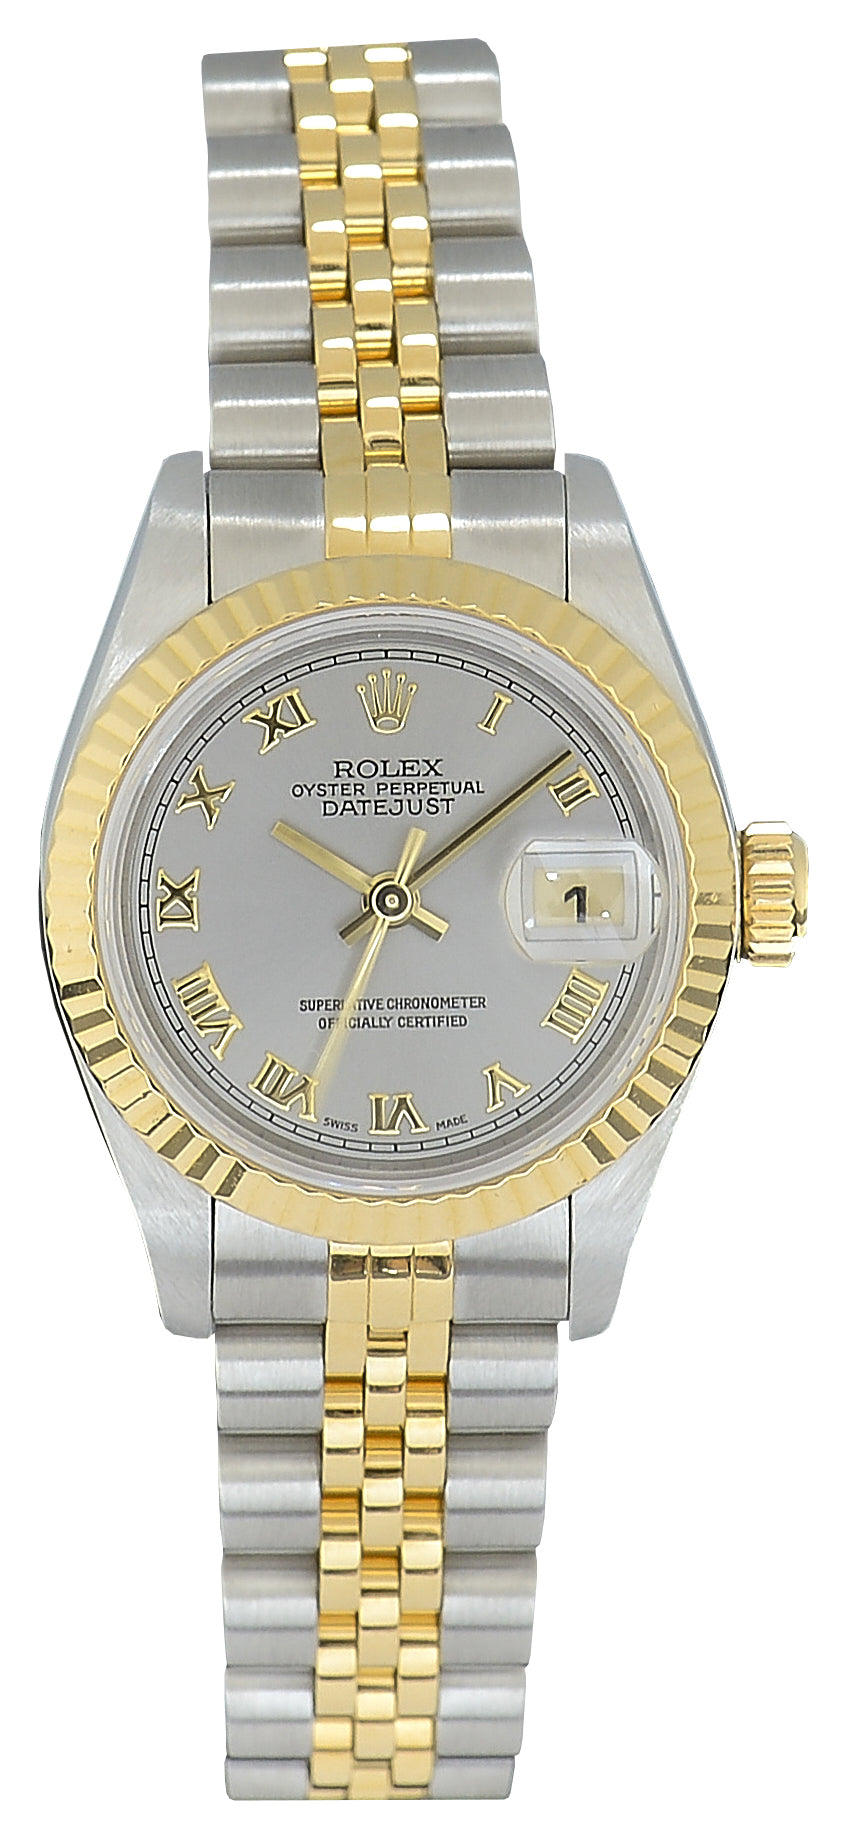 Rolex Datejust Ladies Bimetal Watch with Grey Dial 69173, Service Papers